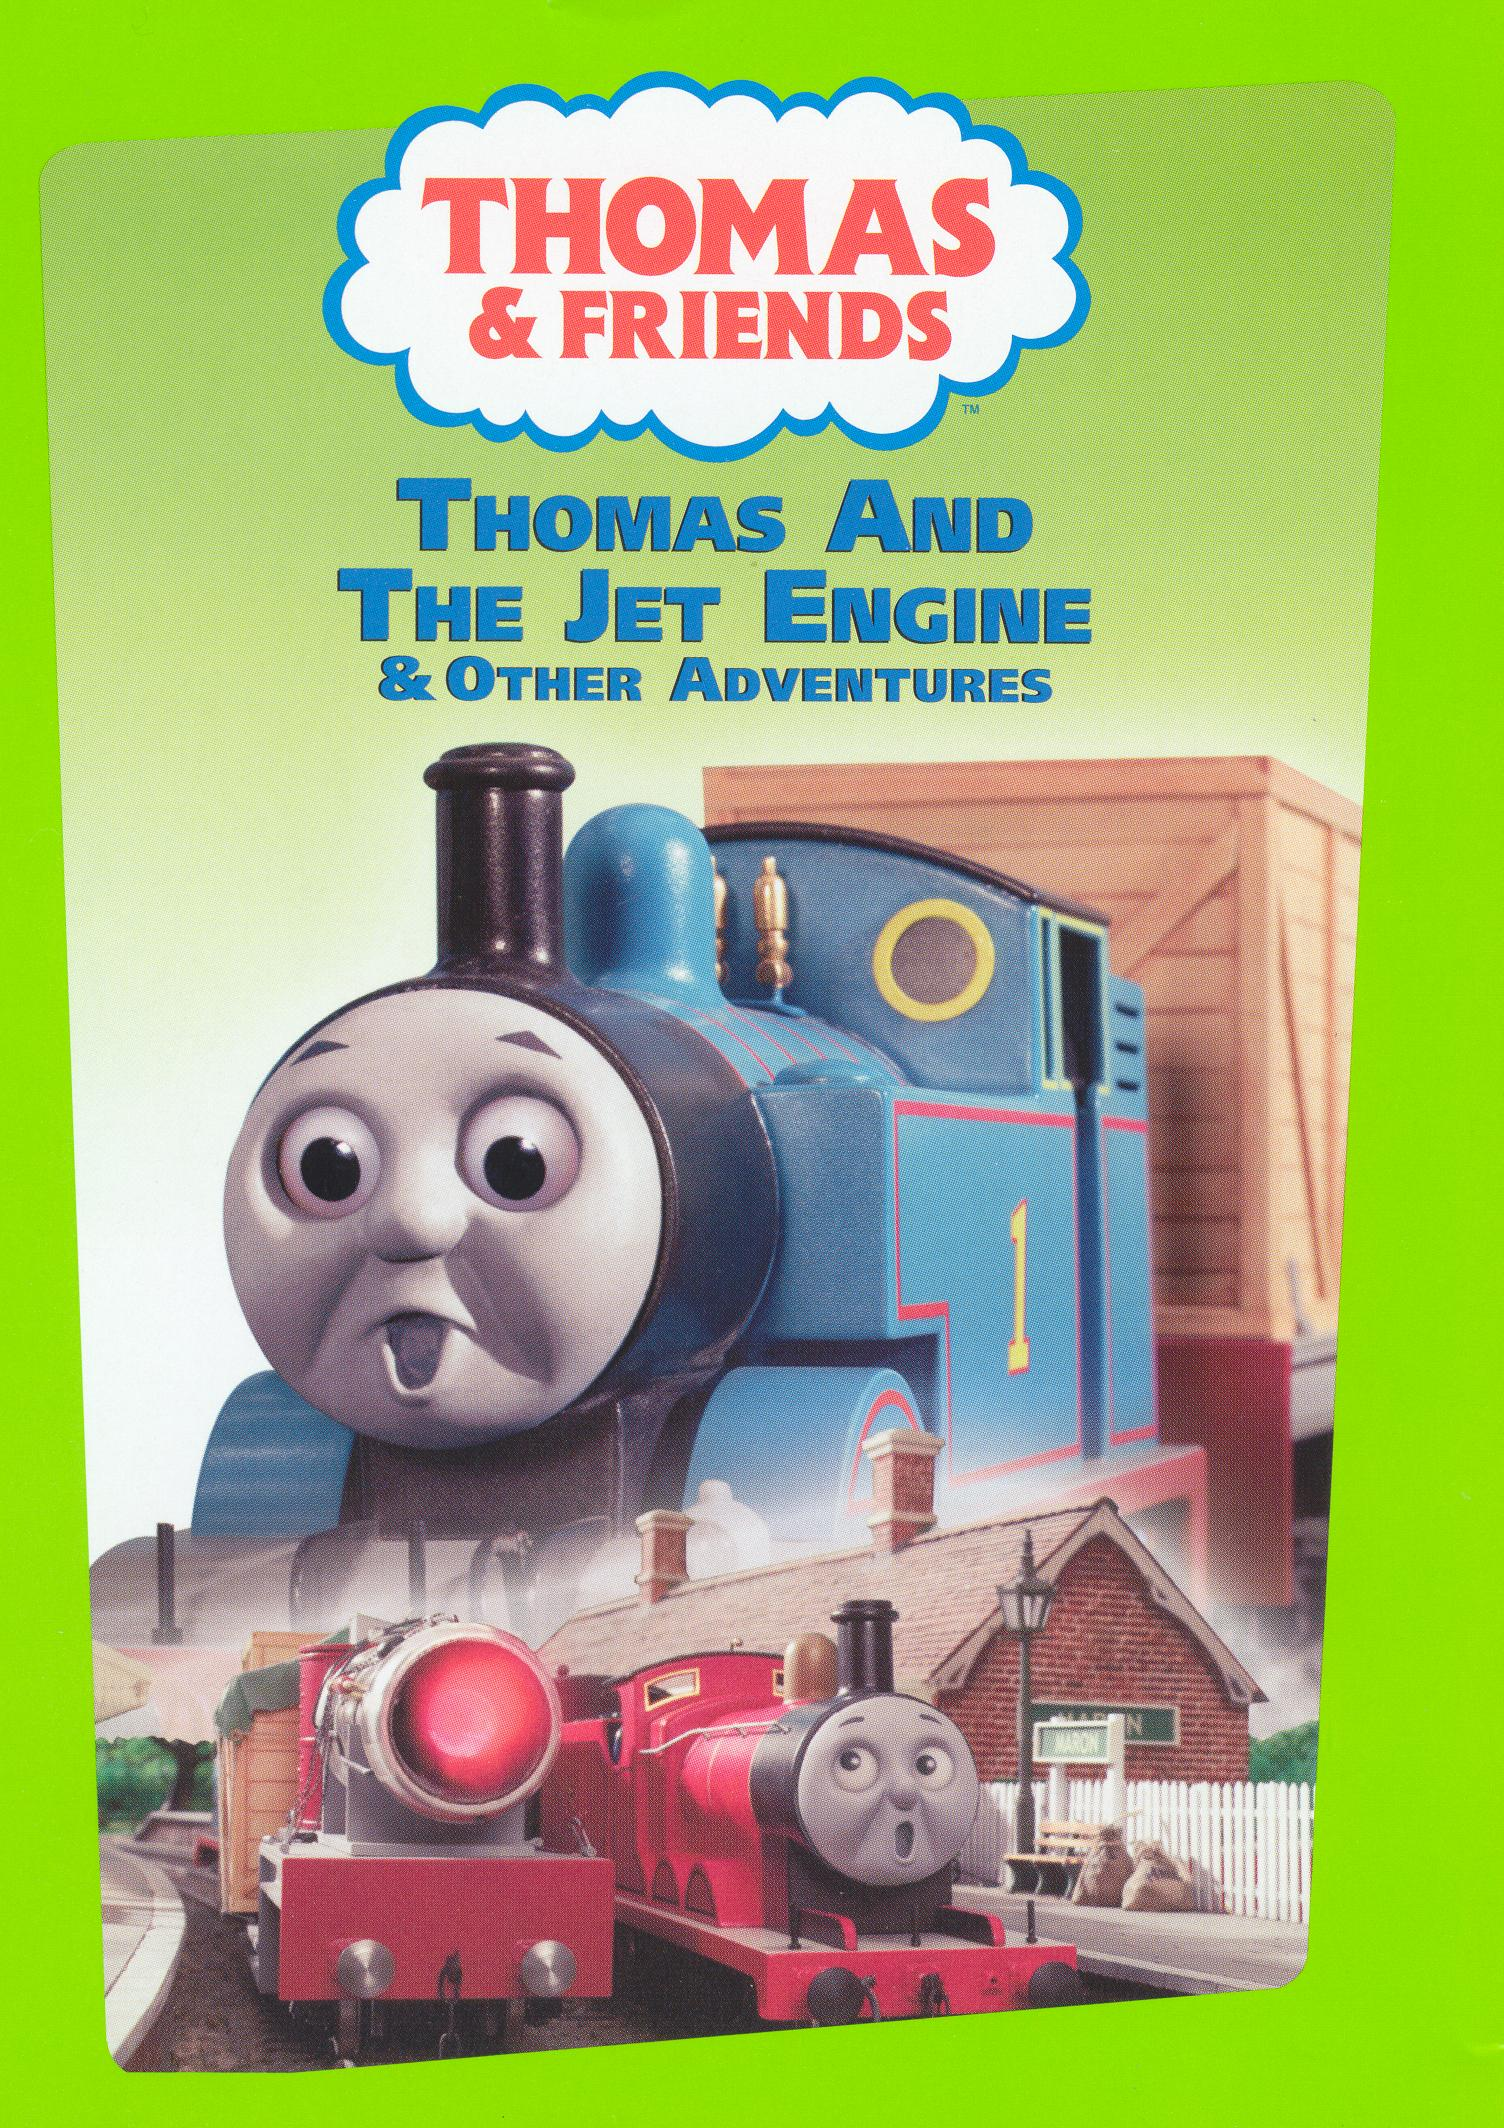 Thomas and the Jet Engine and Other Adventures